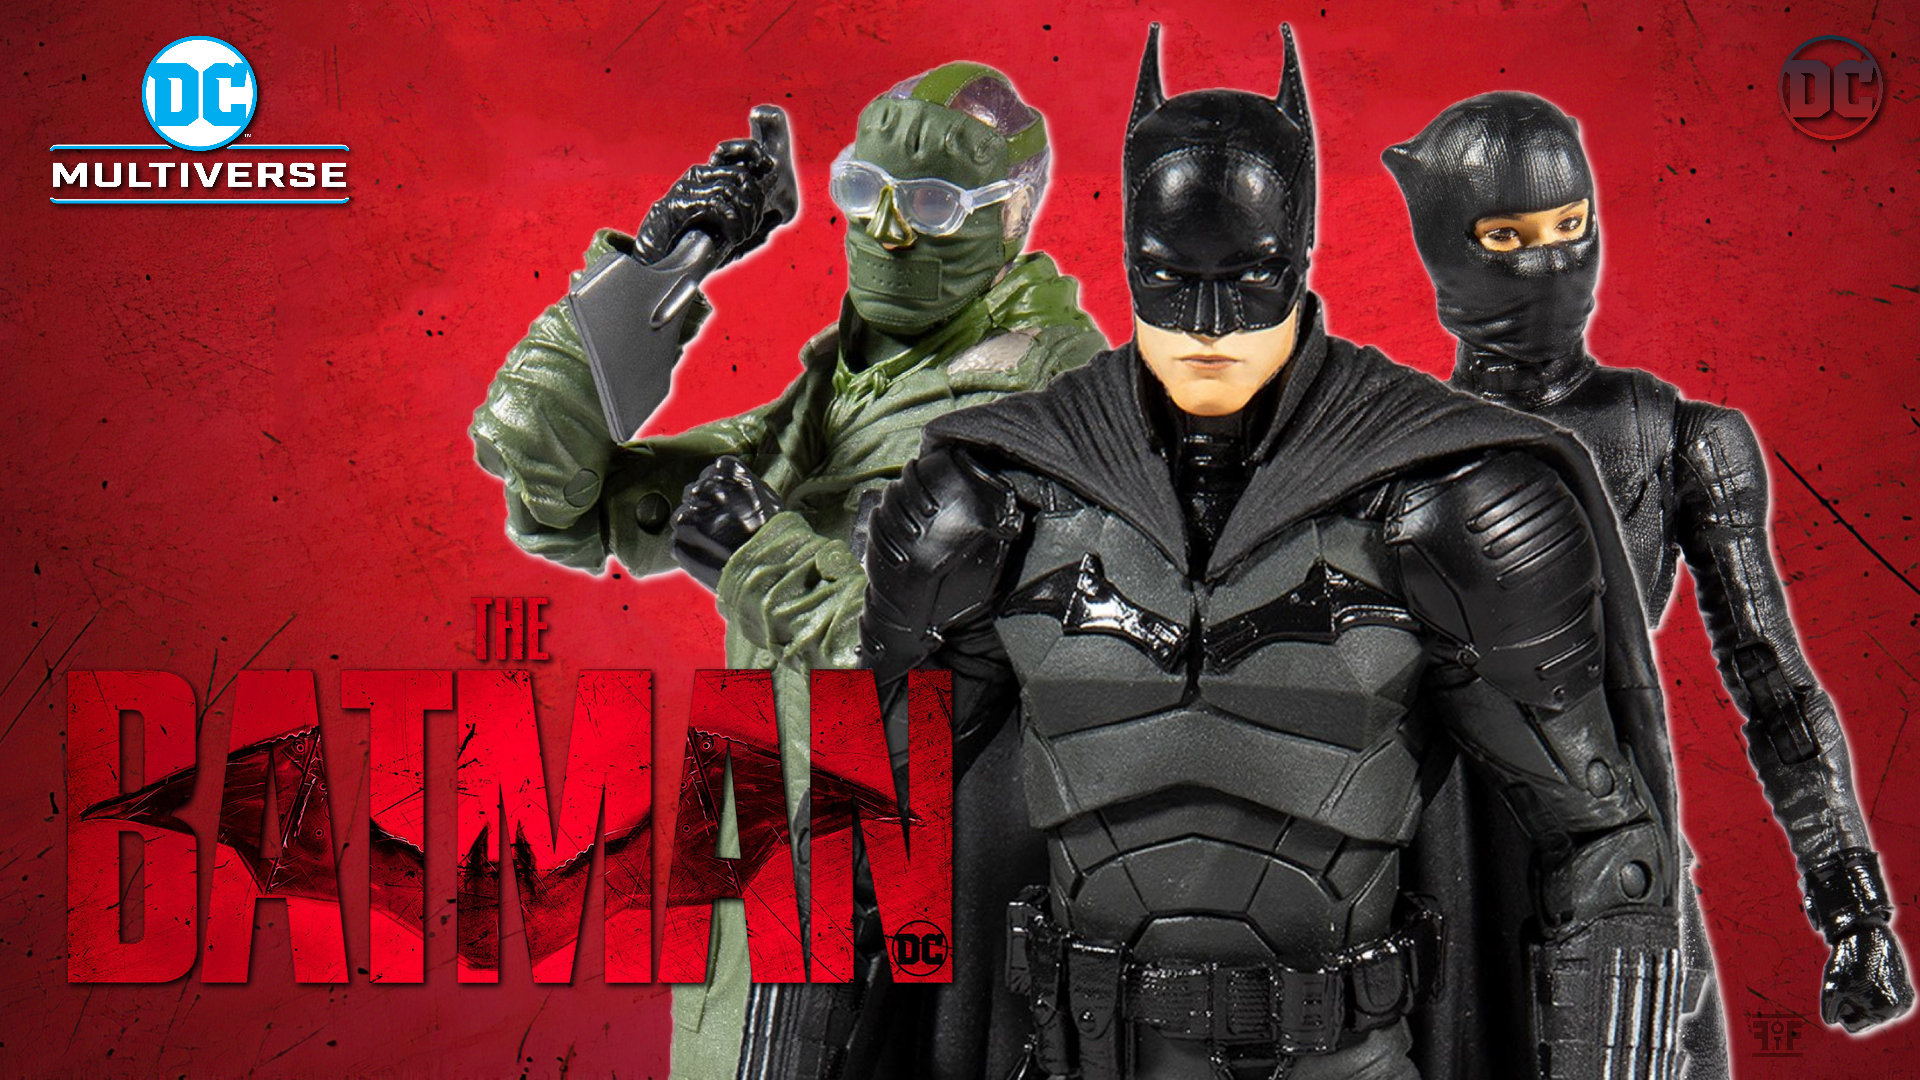 DC Multiverse The Batman Figures From McFarlane Toys Are Here!